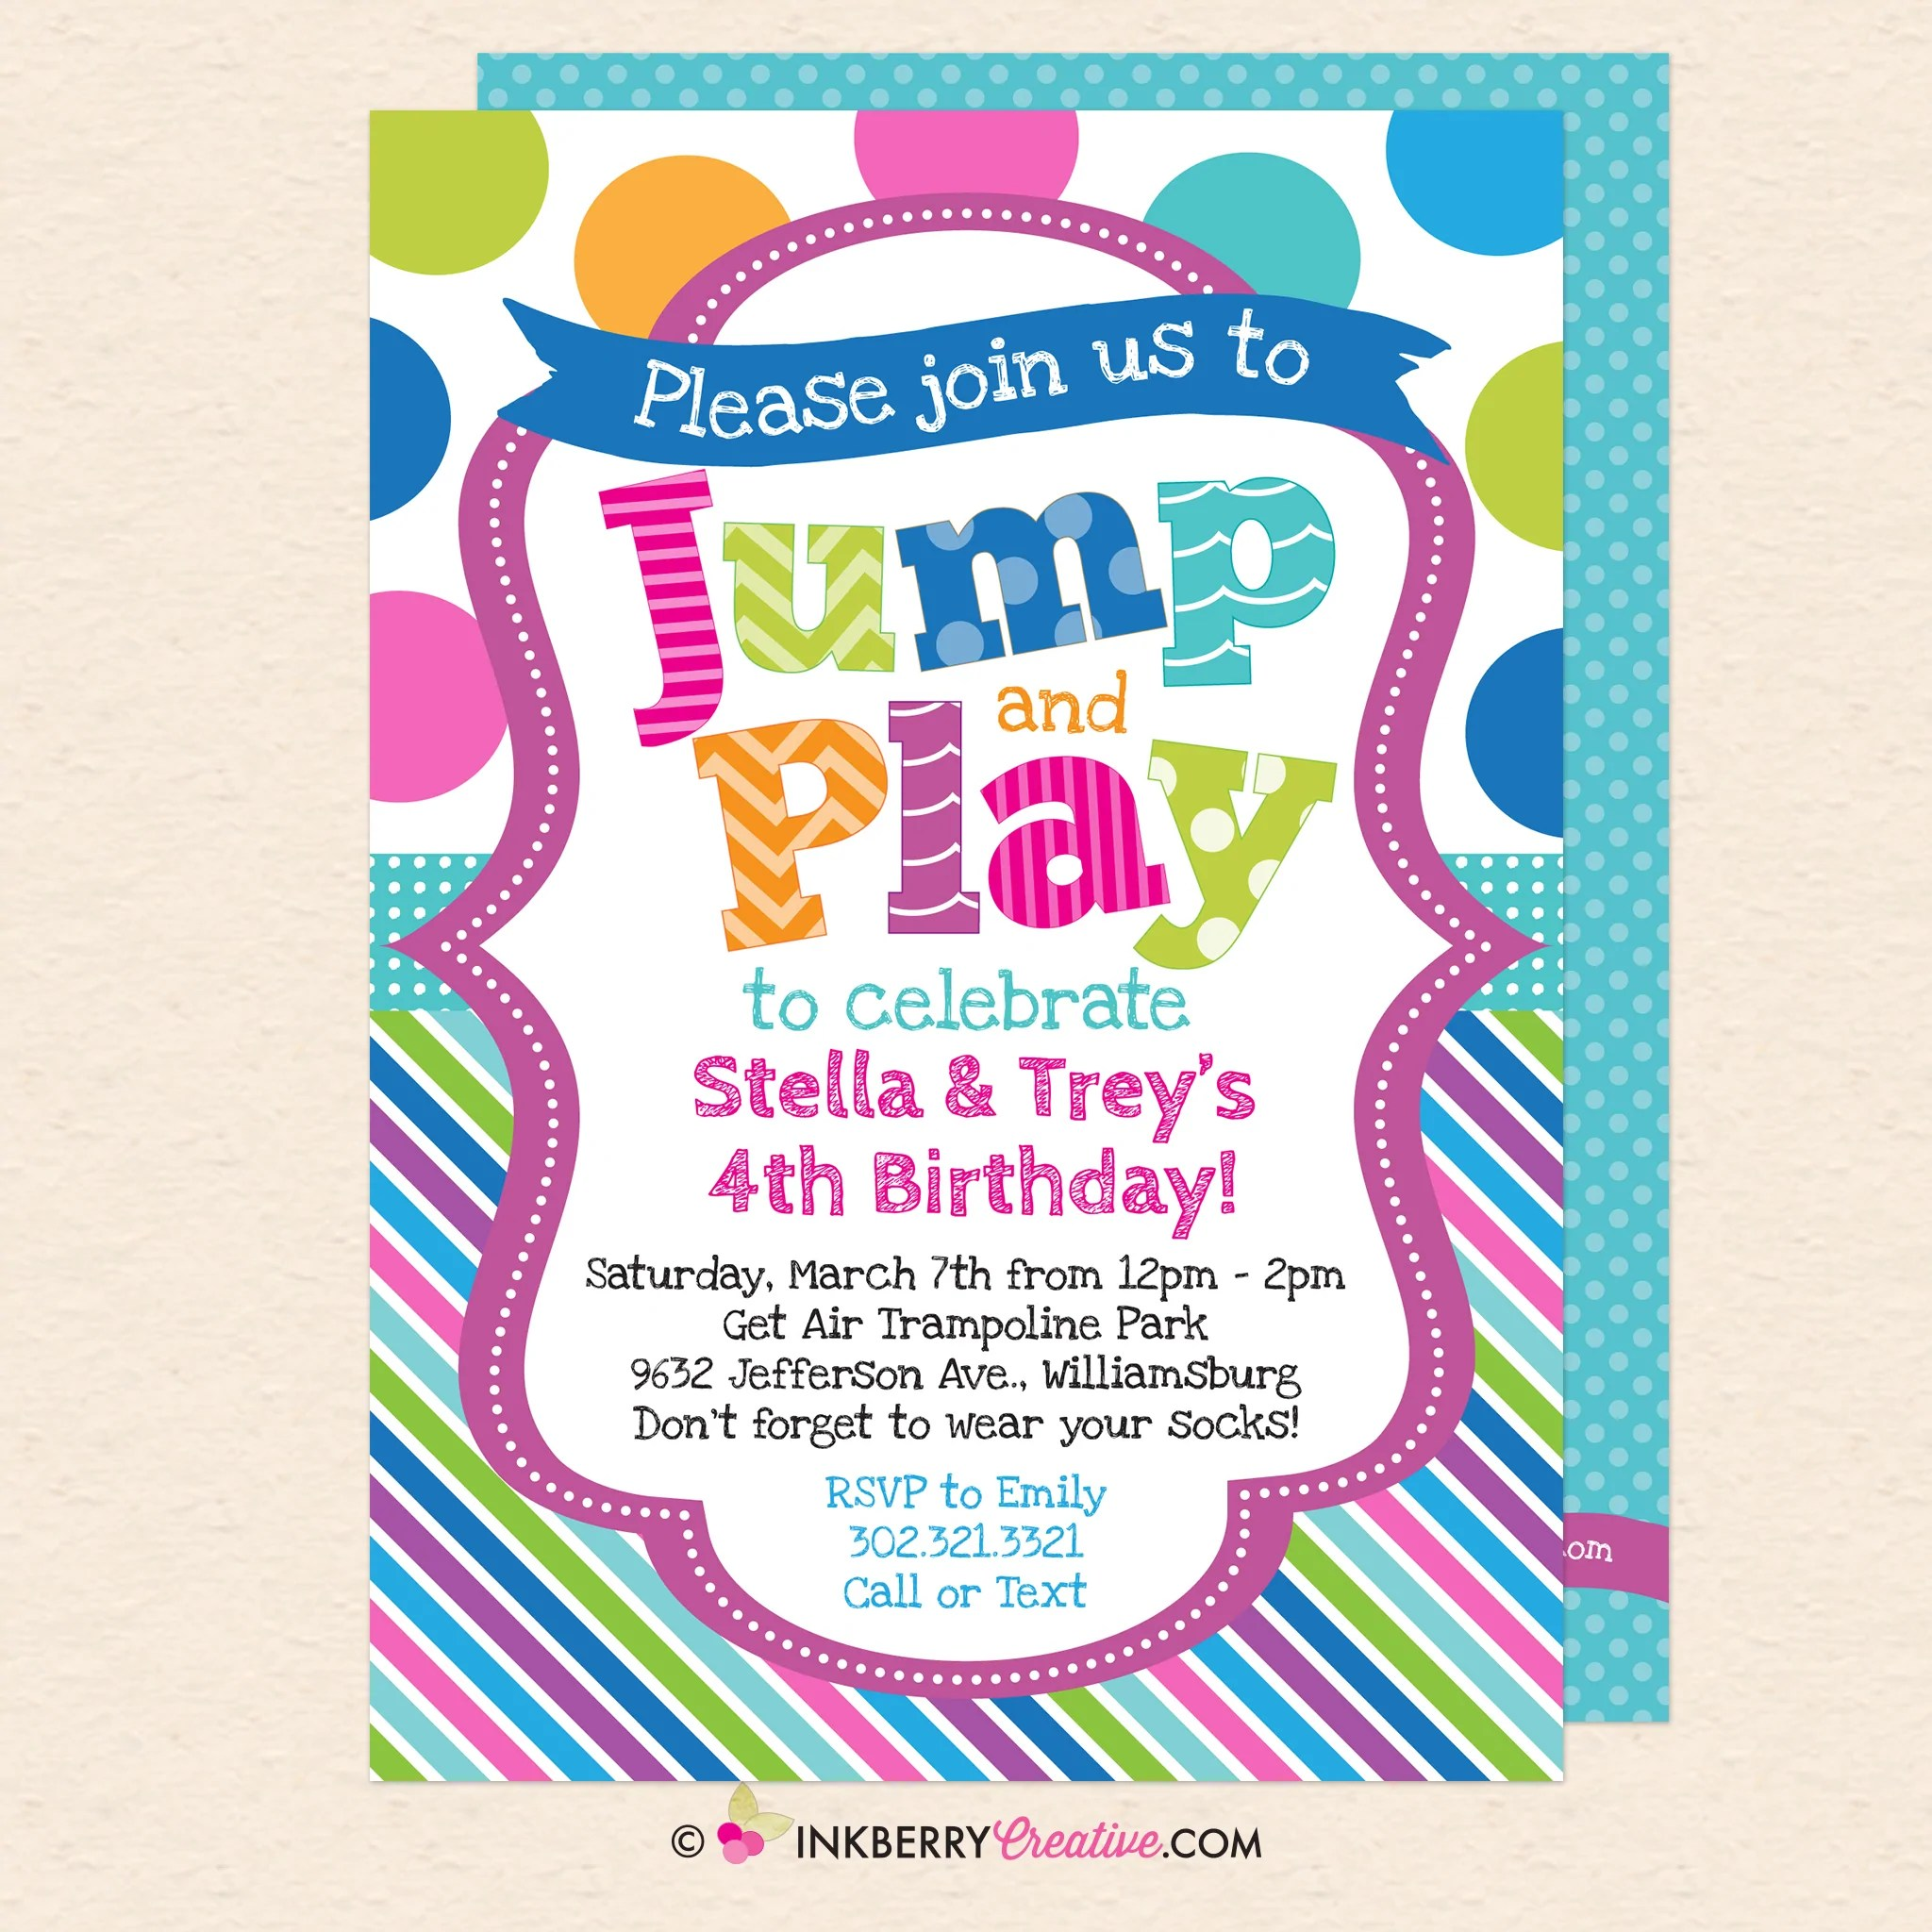 Jump And Play Kids Bounce Or Trampoline Birthday Party Invitation Blu Inkberry Creative Inc